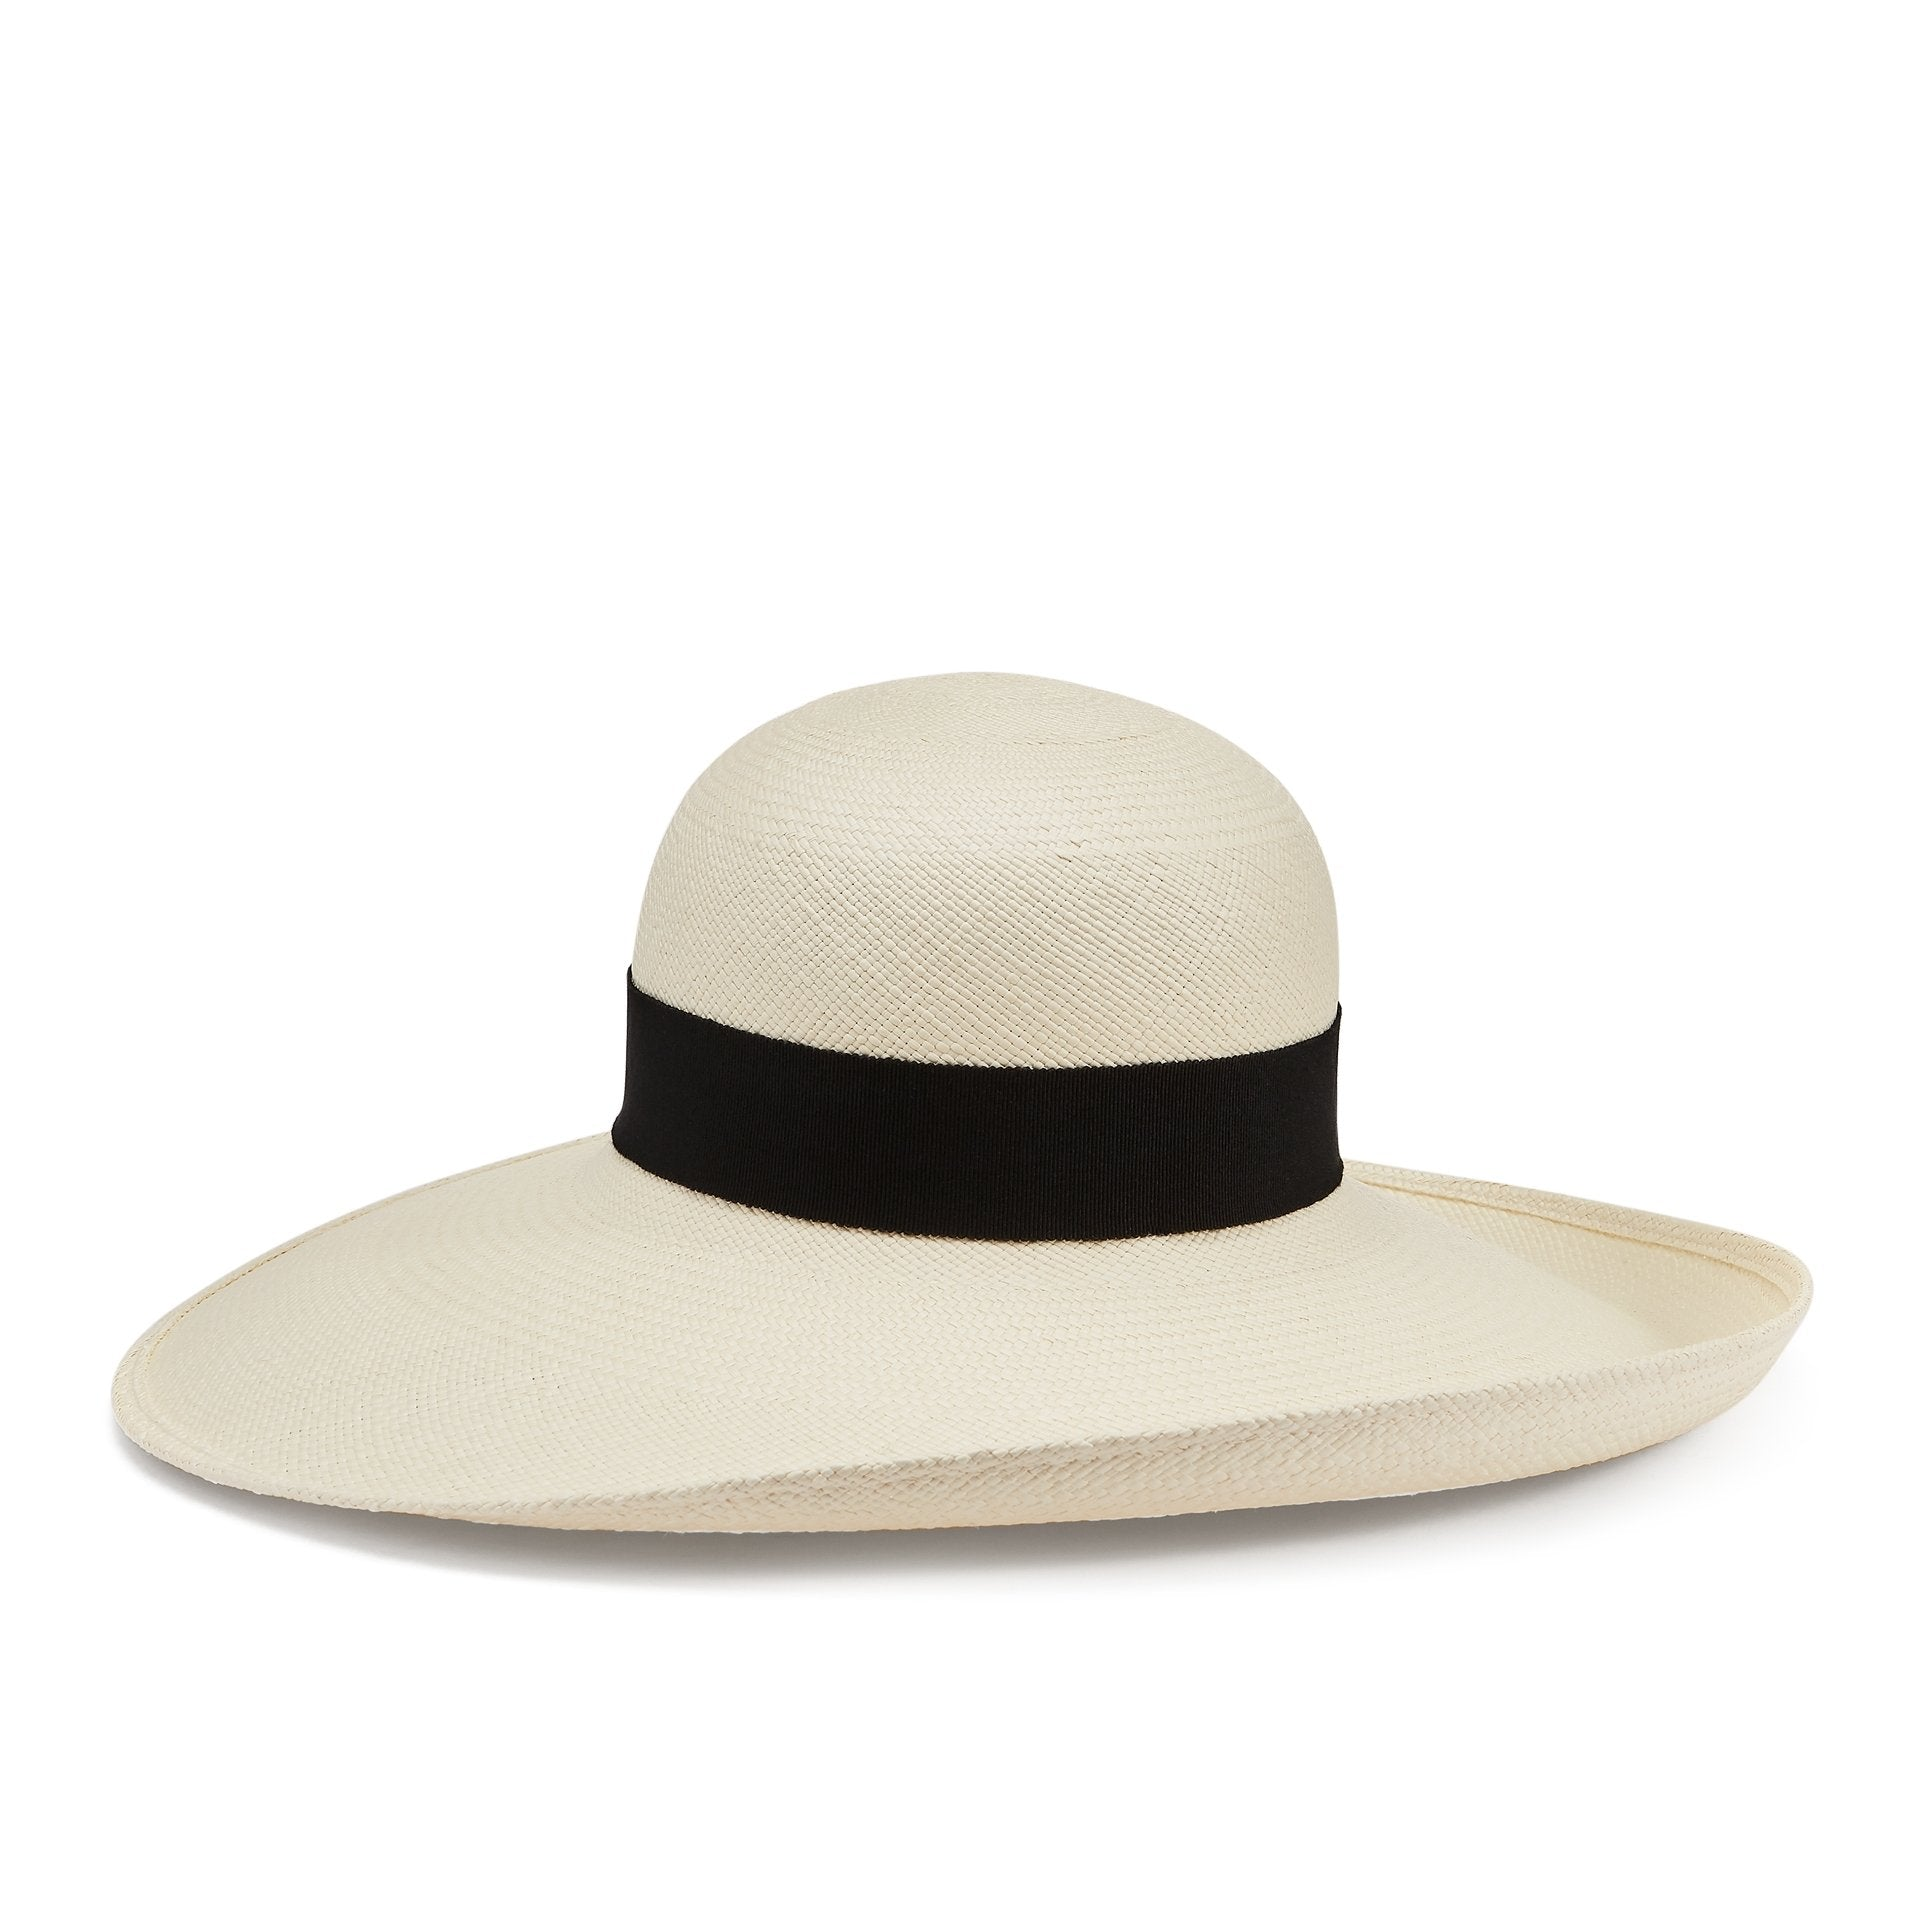 Cleopatra wide brim Panama - Women's hats - Lock & Co. Hatters London UK